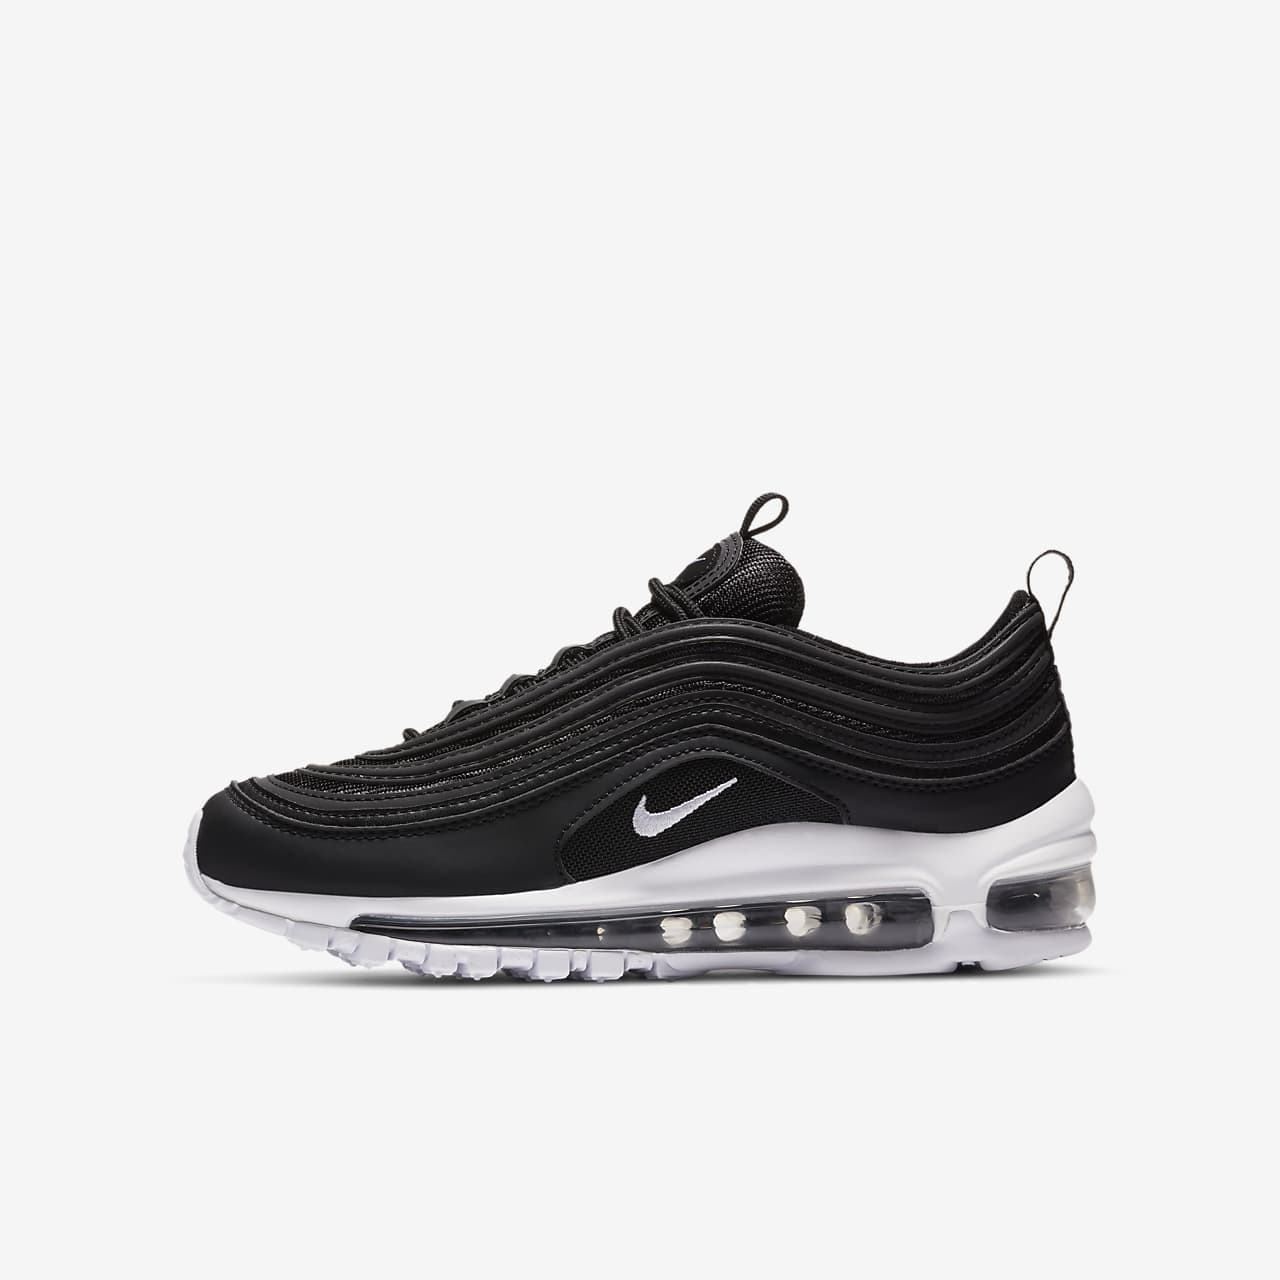 new appearance official shop online for sale nike air max 2017 schwarz kinder günstige-Kostenloser Versand!